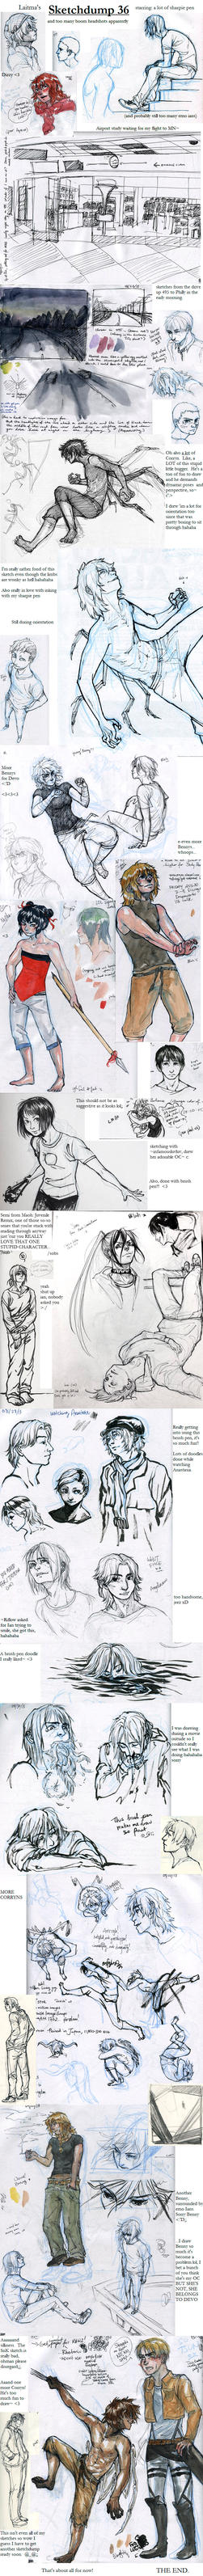 Sketchdump 36 by Laitma